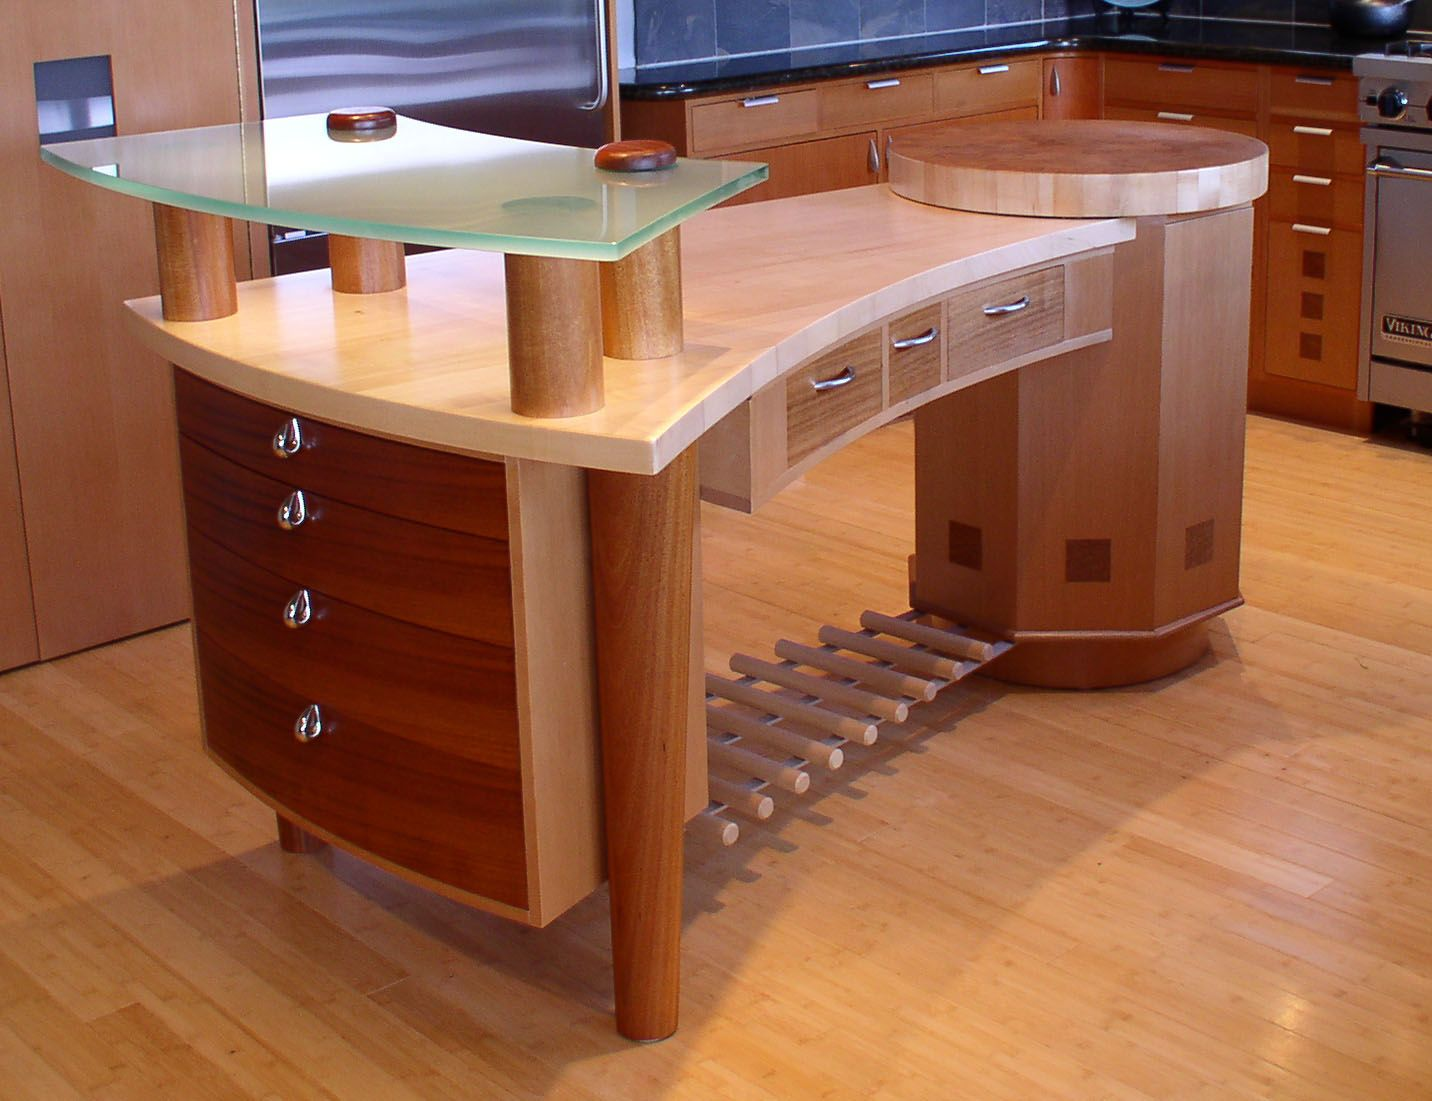 Woodworkers table designs michael singer fine woodworking offers individualized custom design - Wood furniture design ...